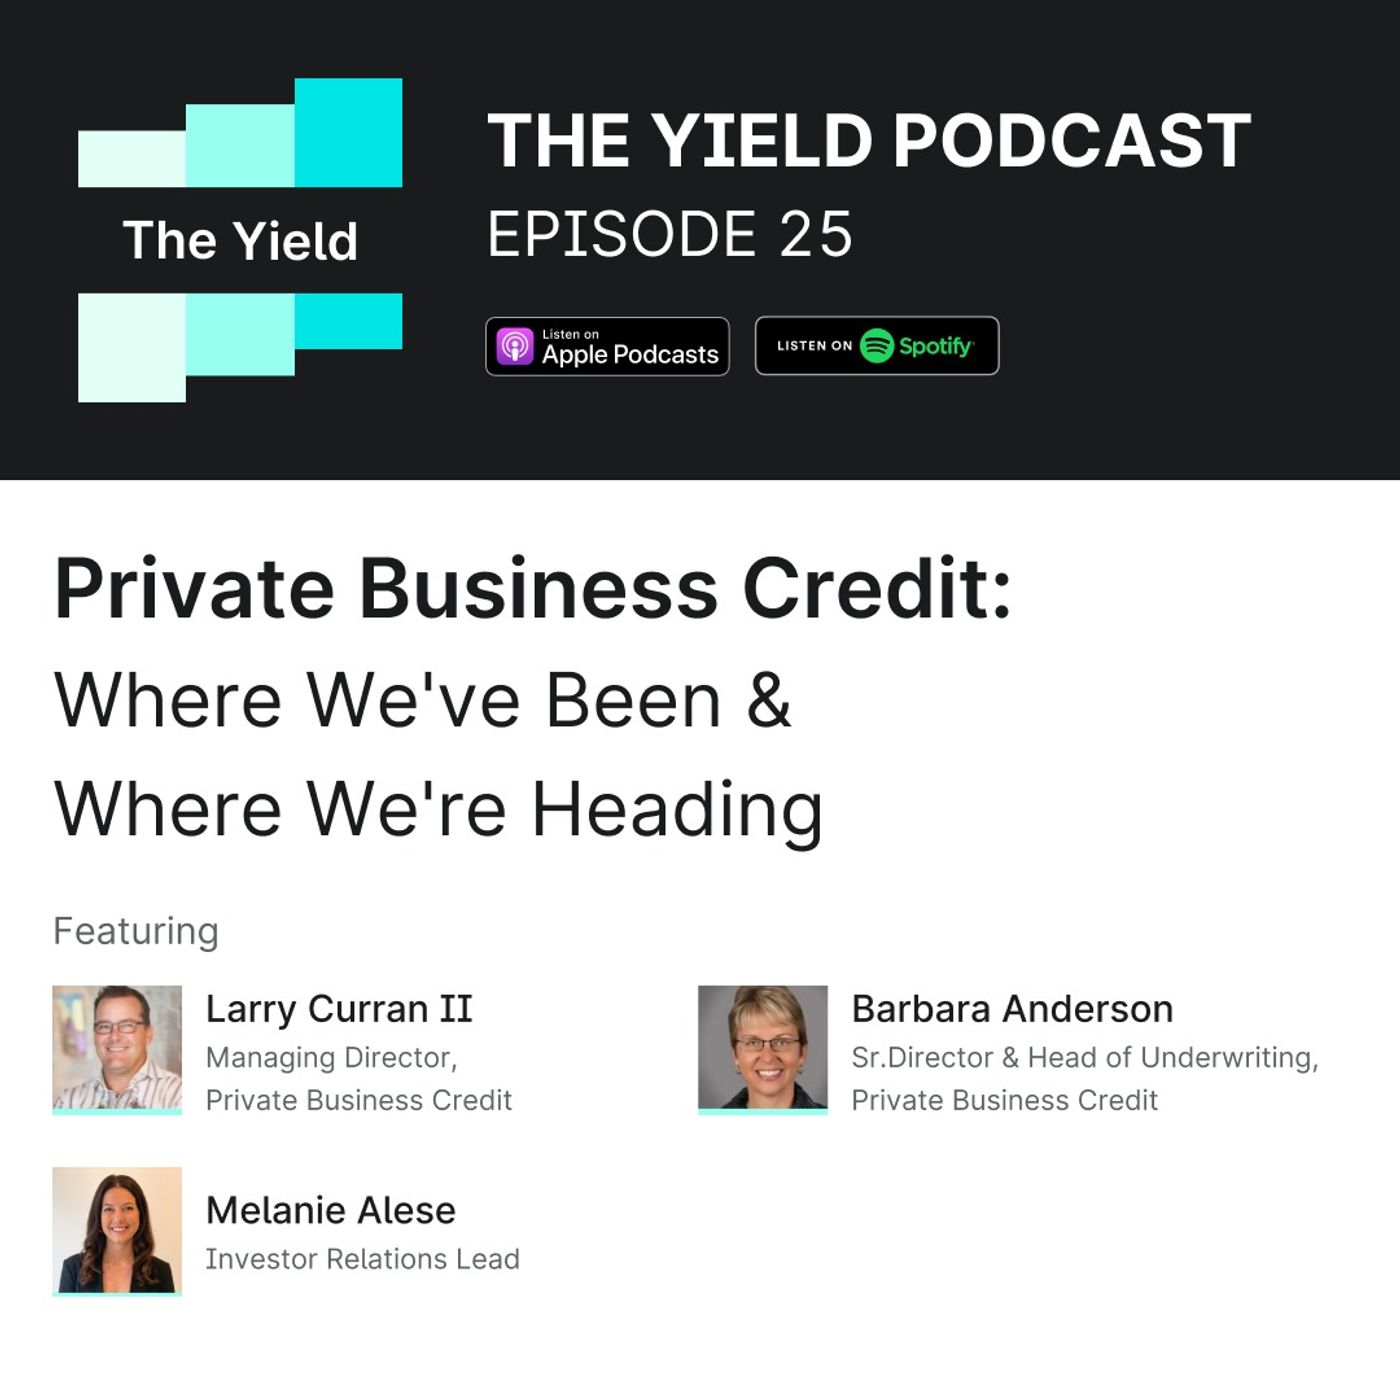 Private Business Credit: Where We've Been & Where We're Heading